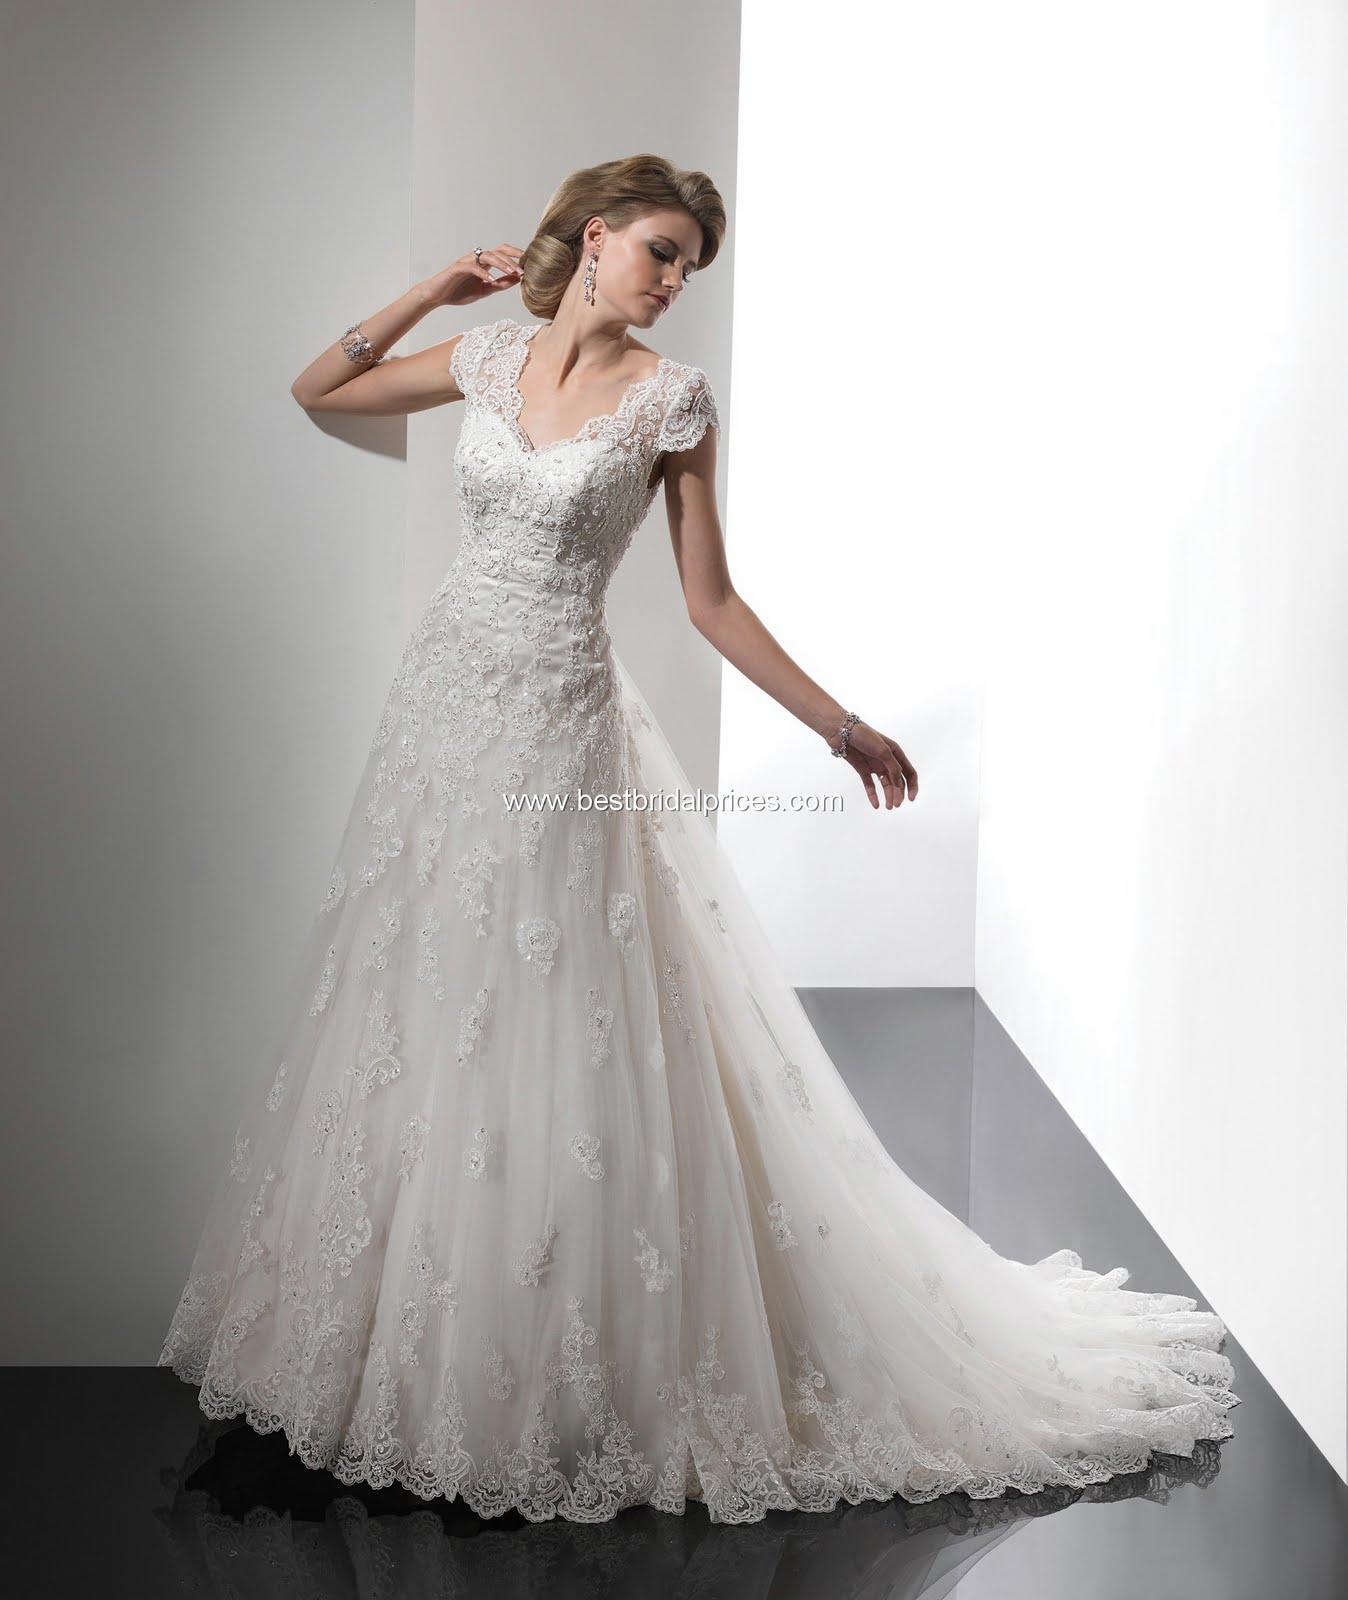 Superb Wedding Dresses 88 Luxury So here are some